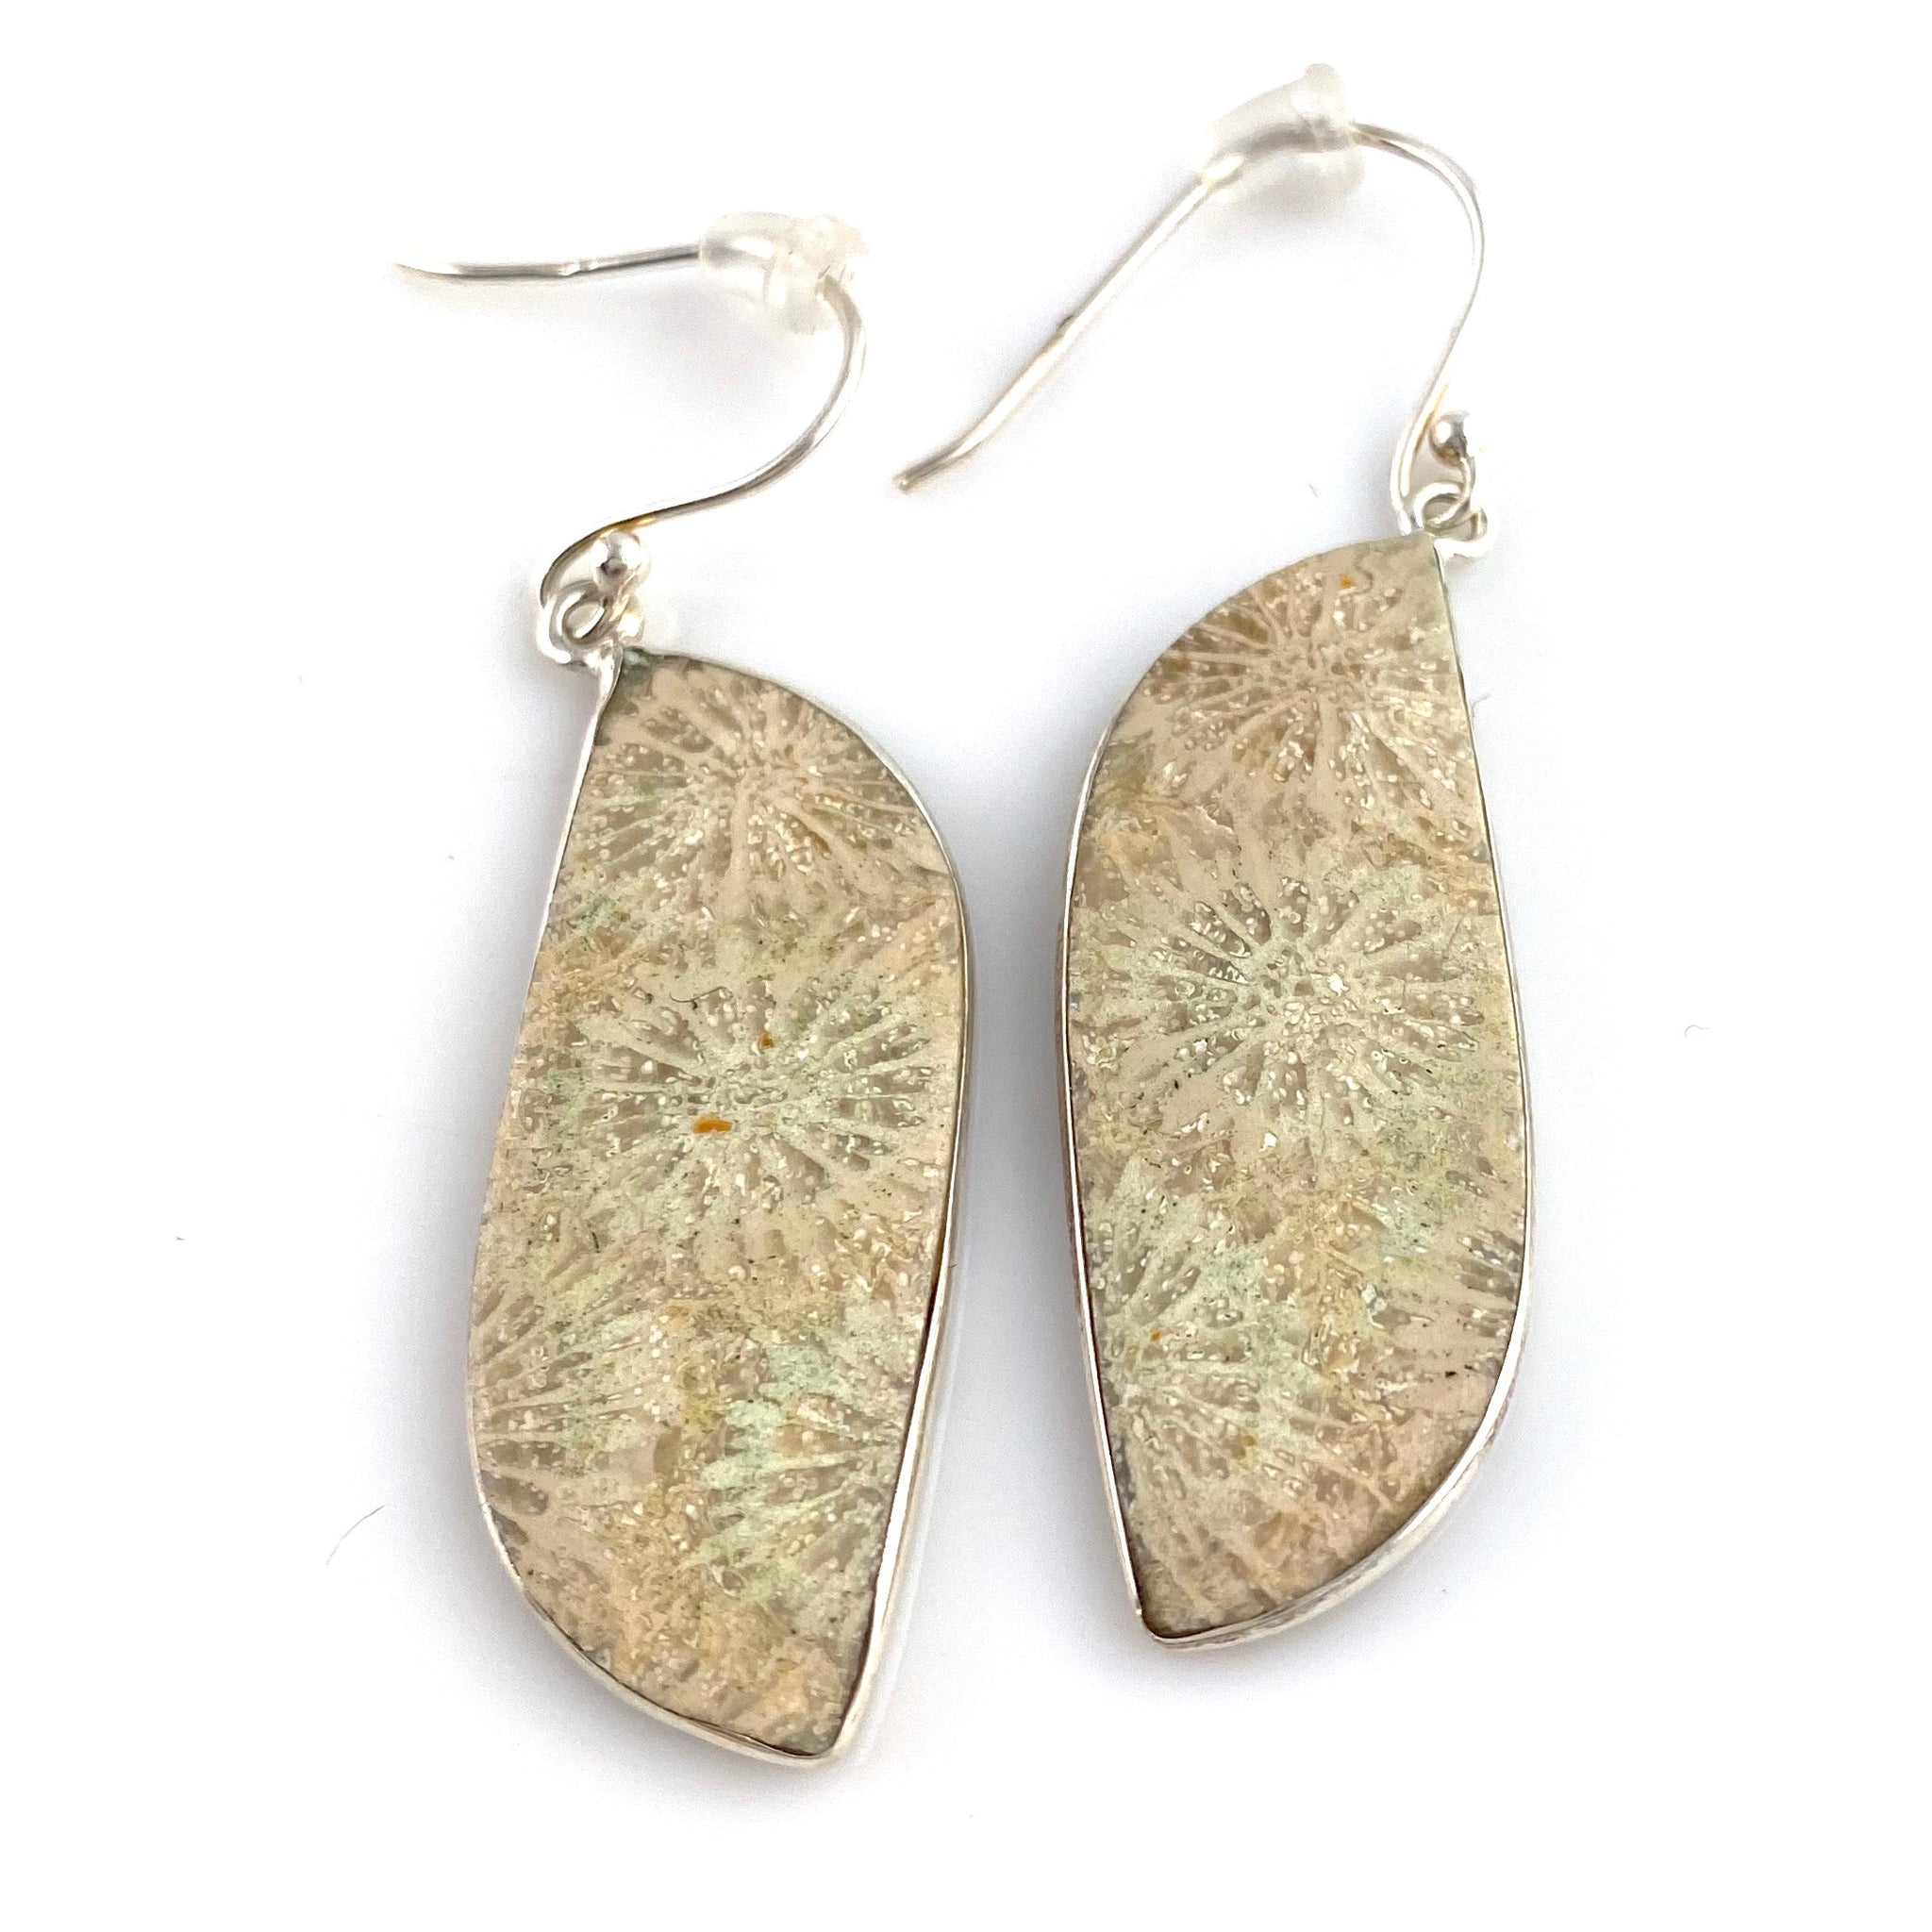 Fossilized Coral Sterling Silver Earrings - Keja Designs Jewelry